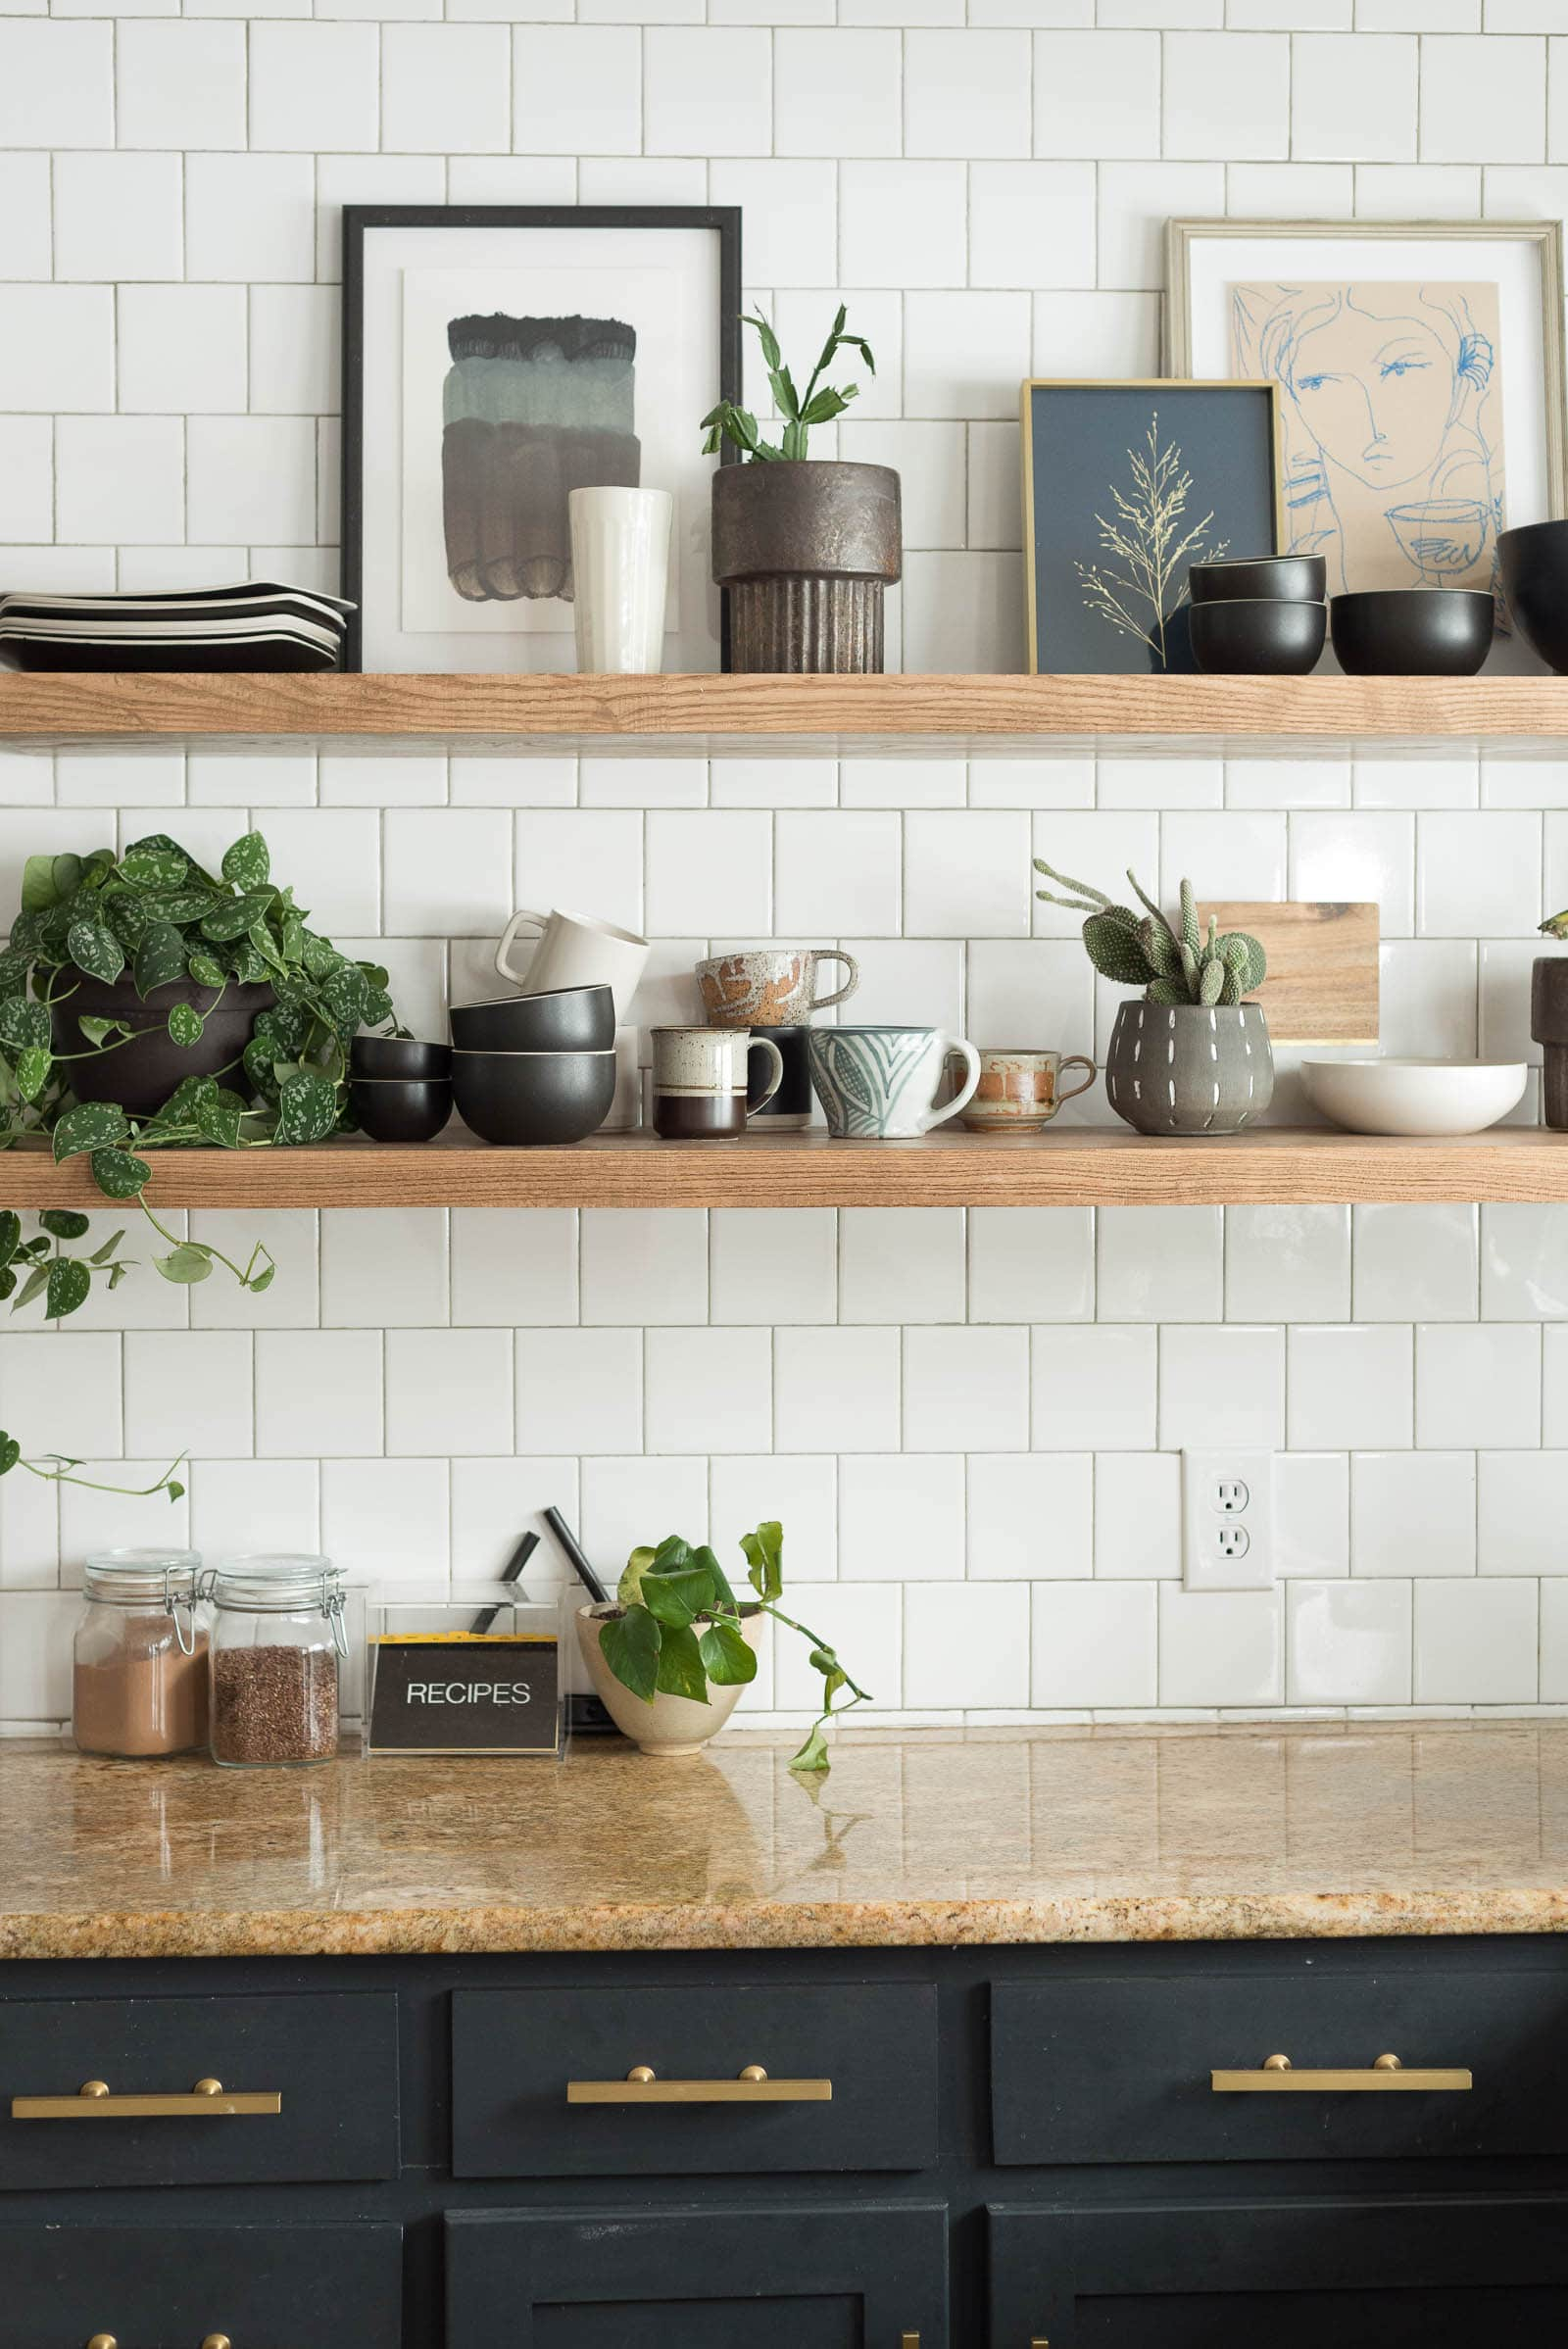 Styled floating shelves in kitchen | Open Kitchen Shelves